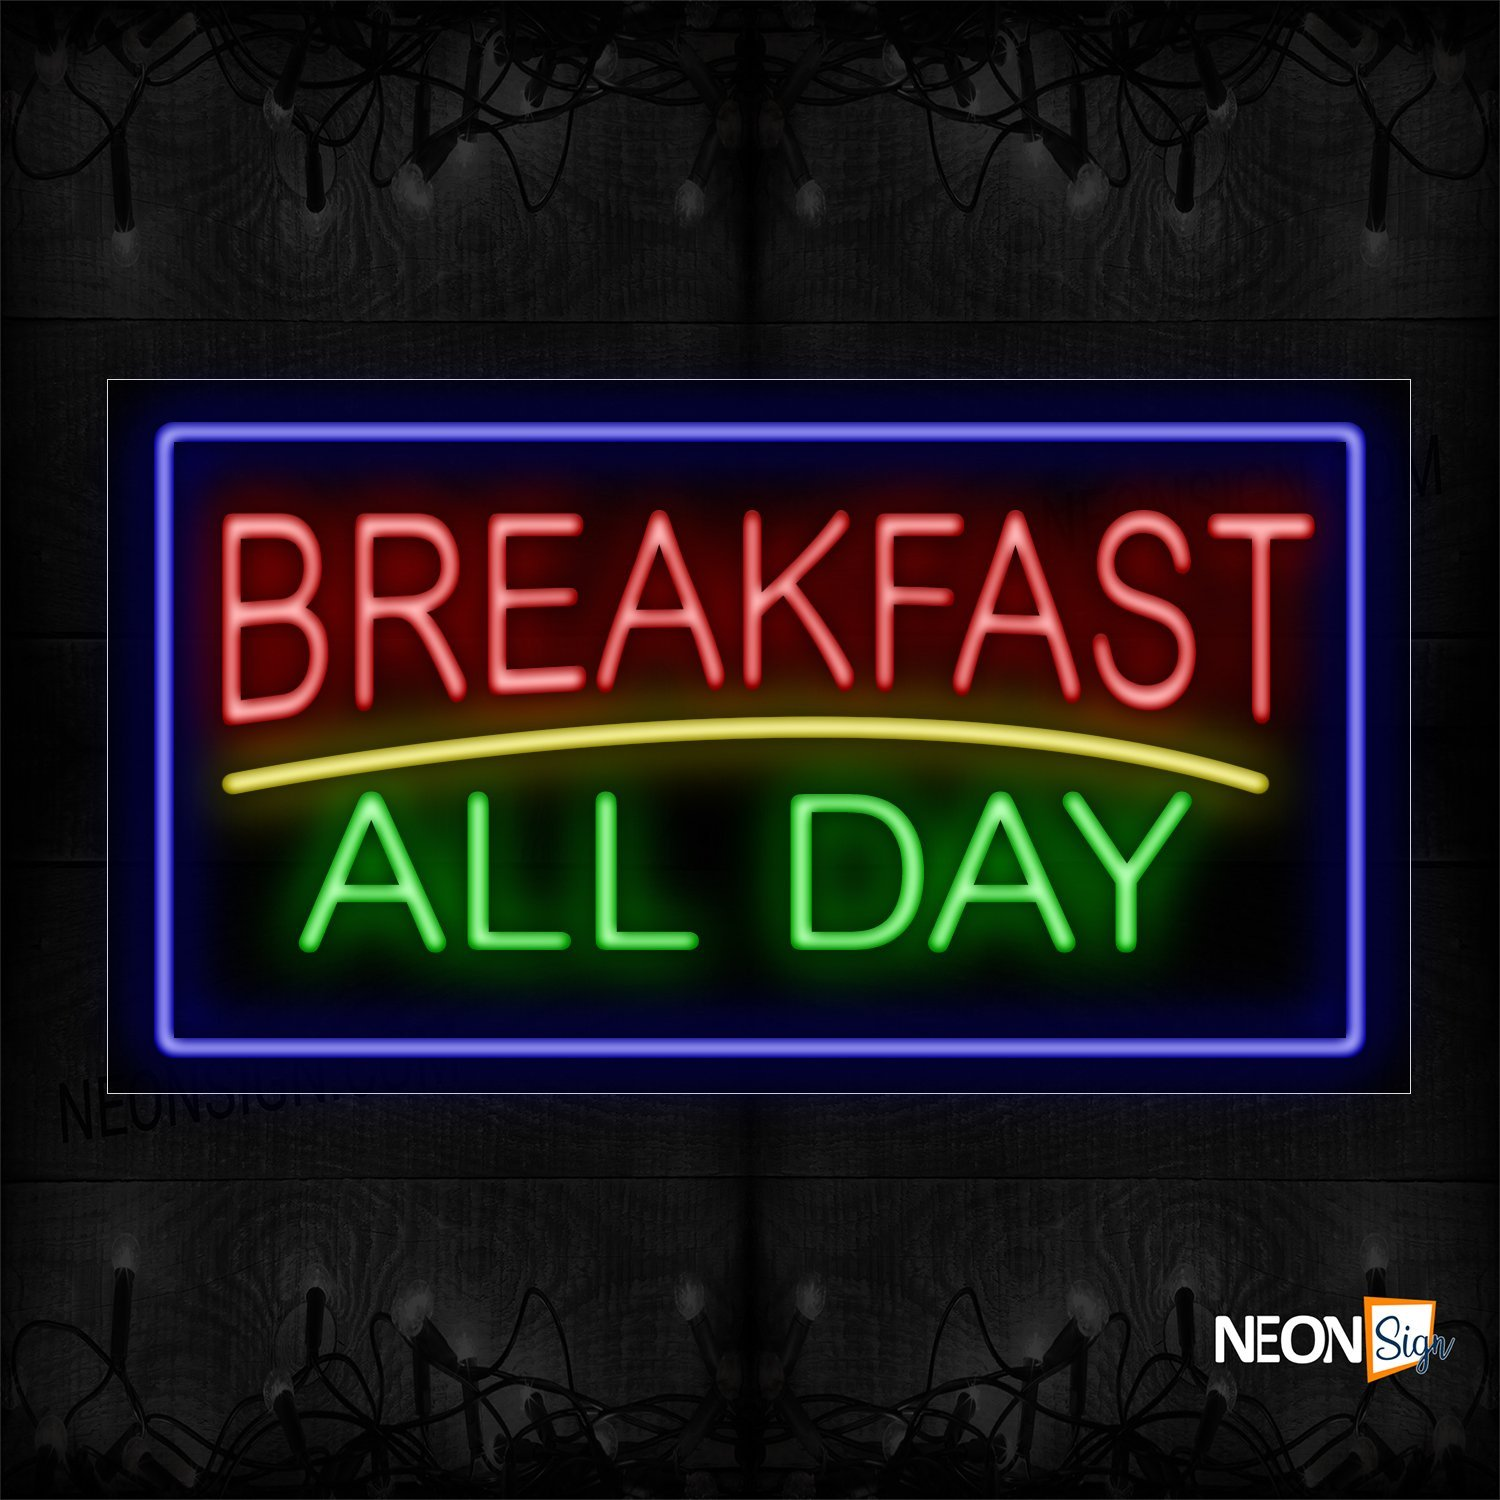 Image of 11273 Breakfast All Day With Blue Border And Yellow Line Neon Sign_20x37 Black Backing